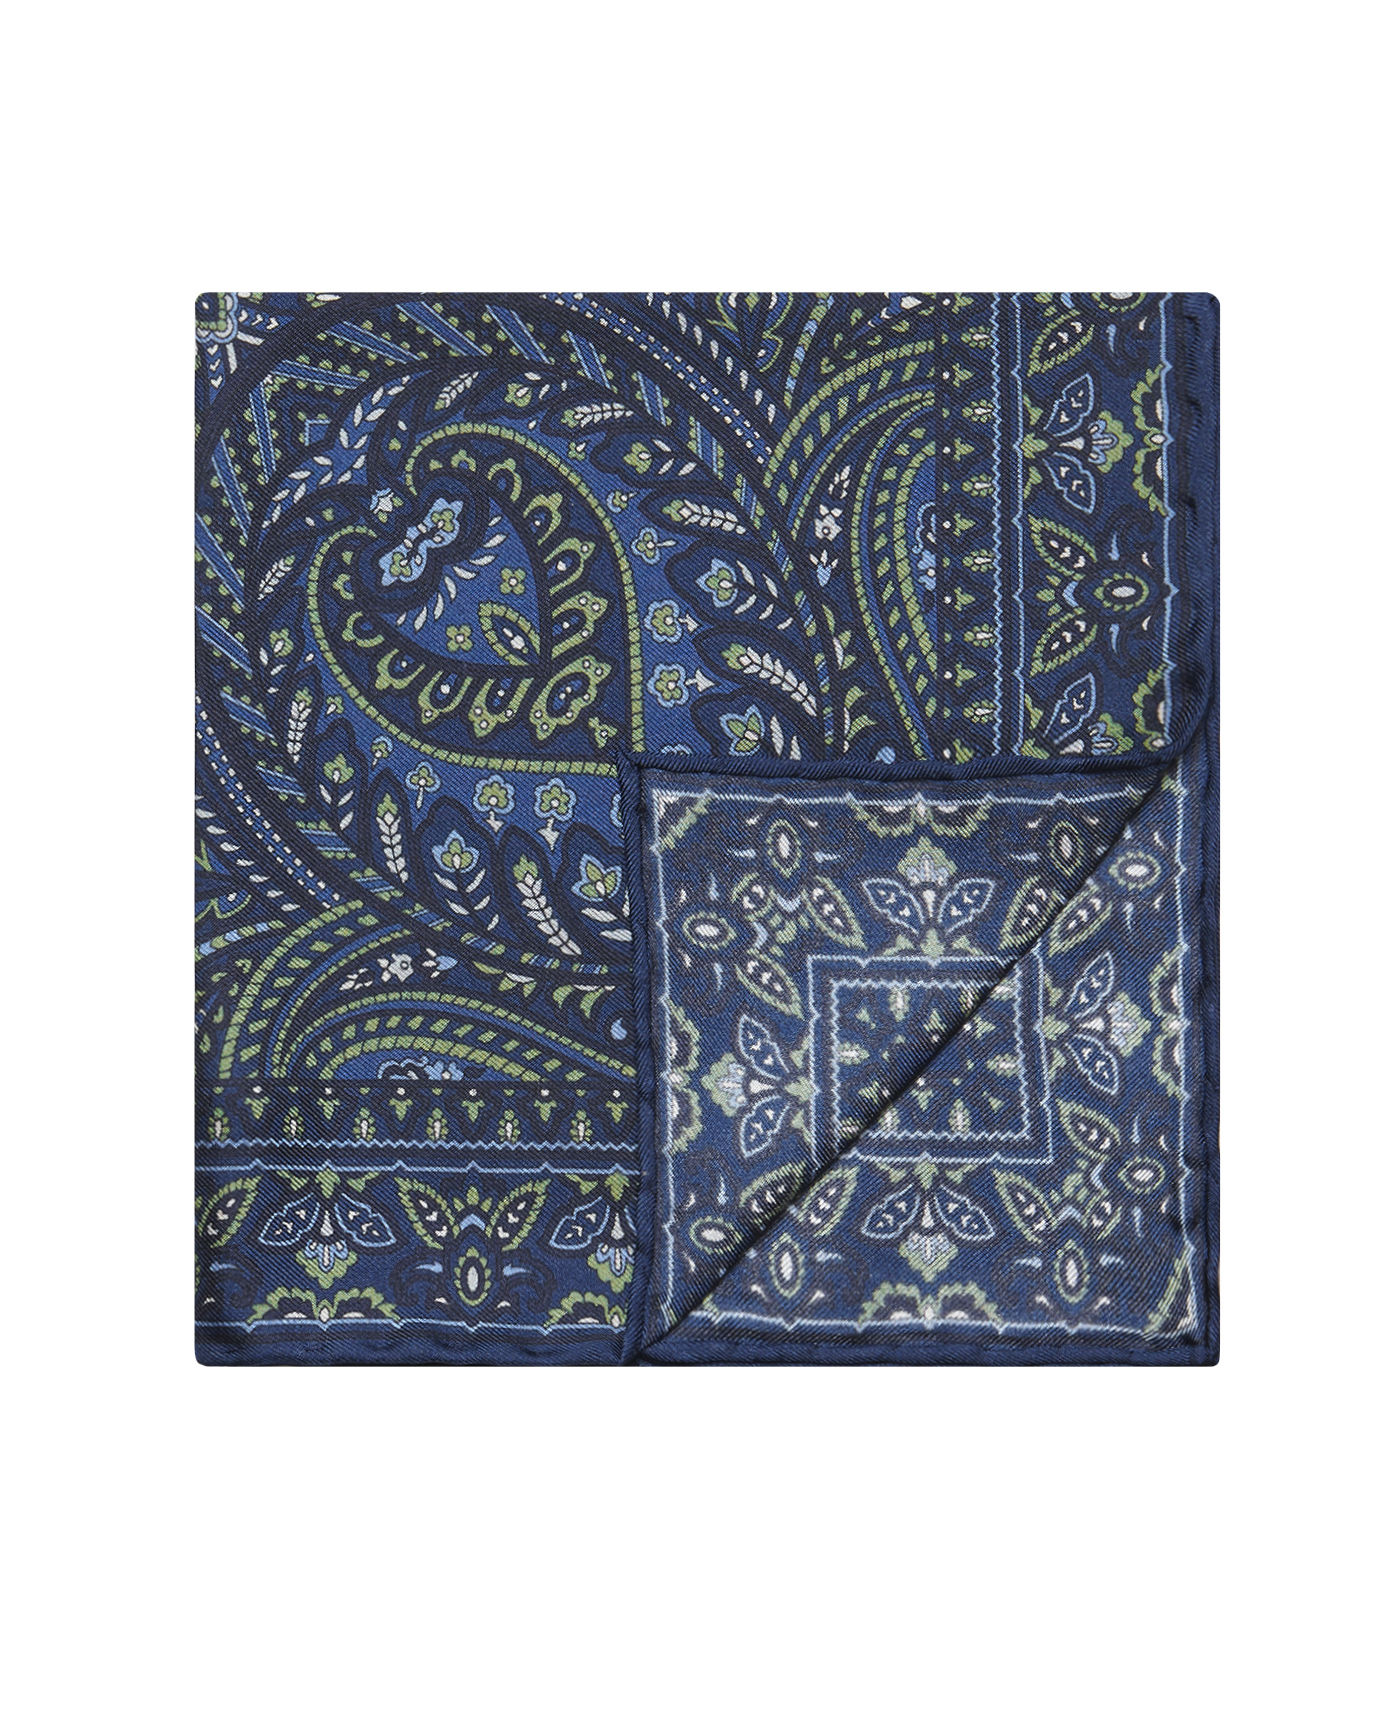 T.M.Lewin Made in Italy Navy Paisley Silk Pocket Square